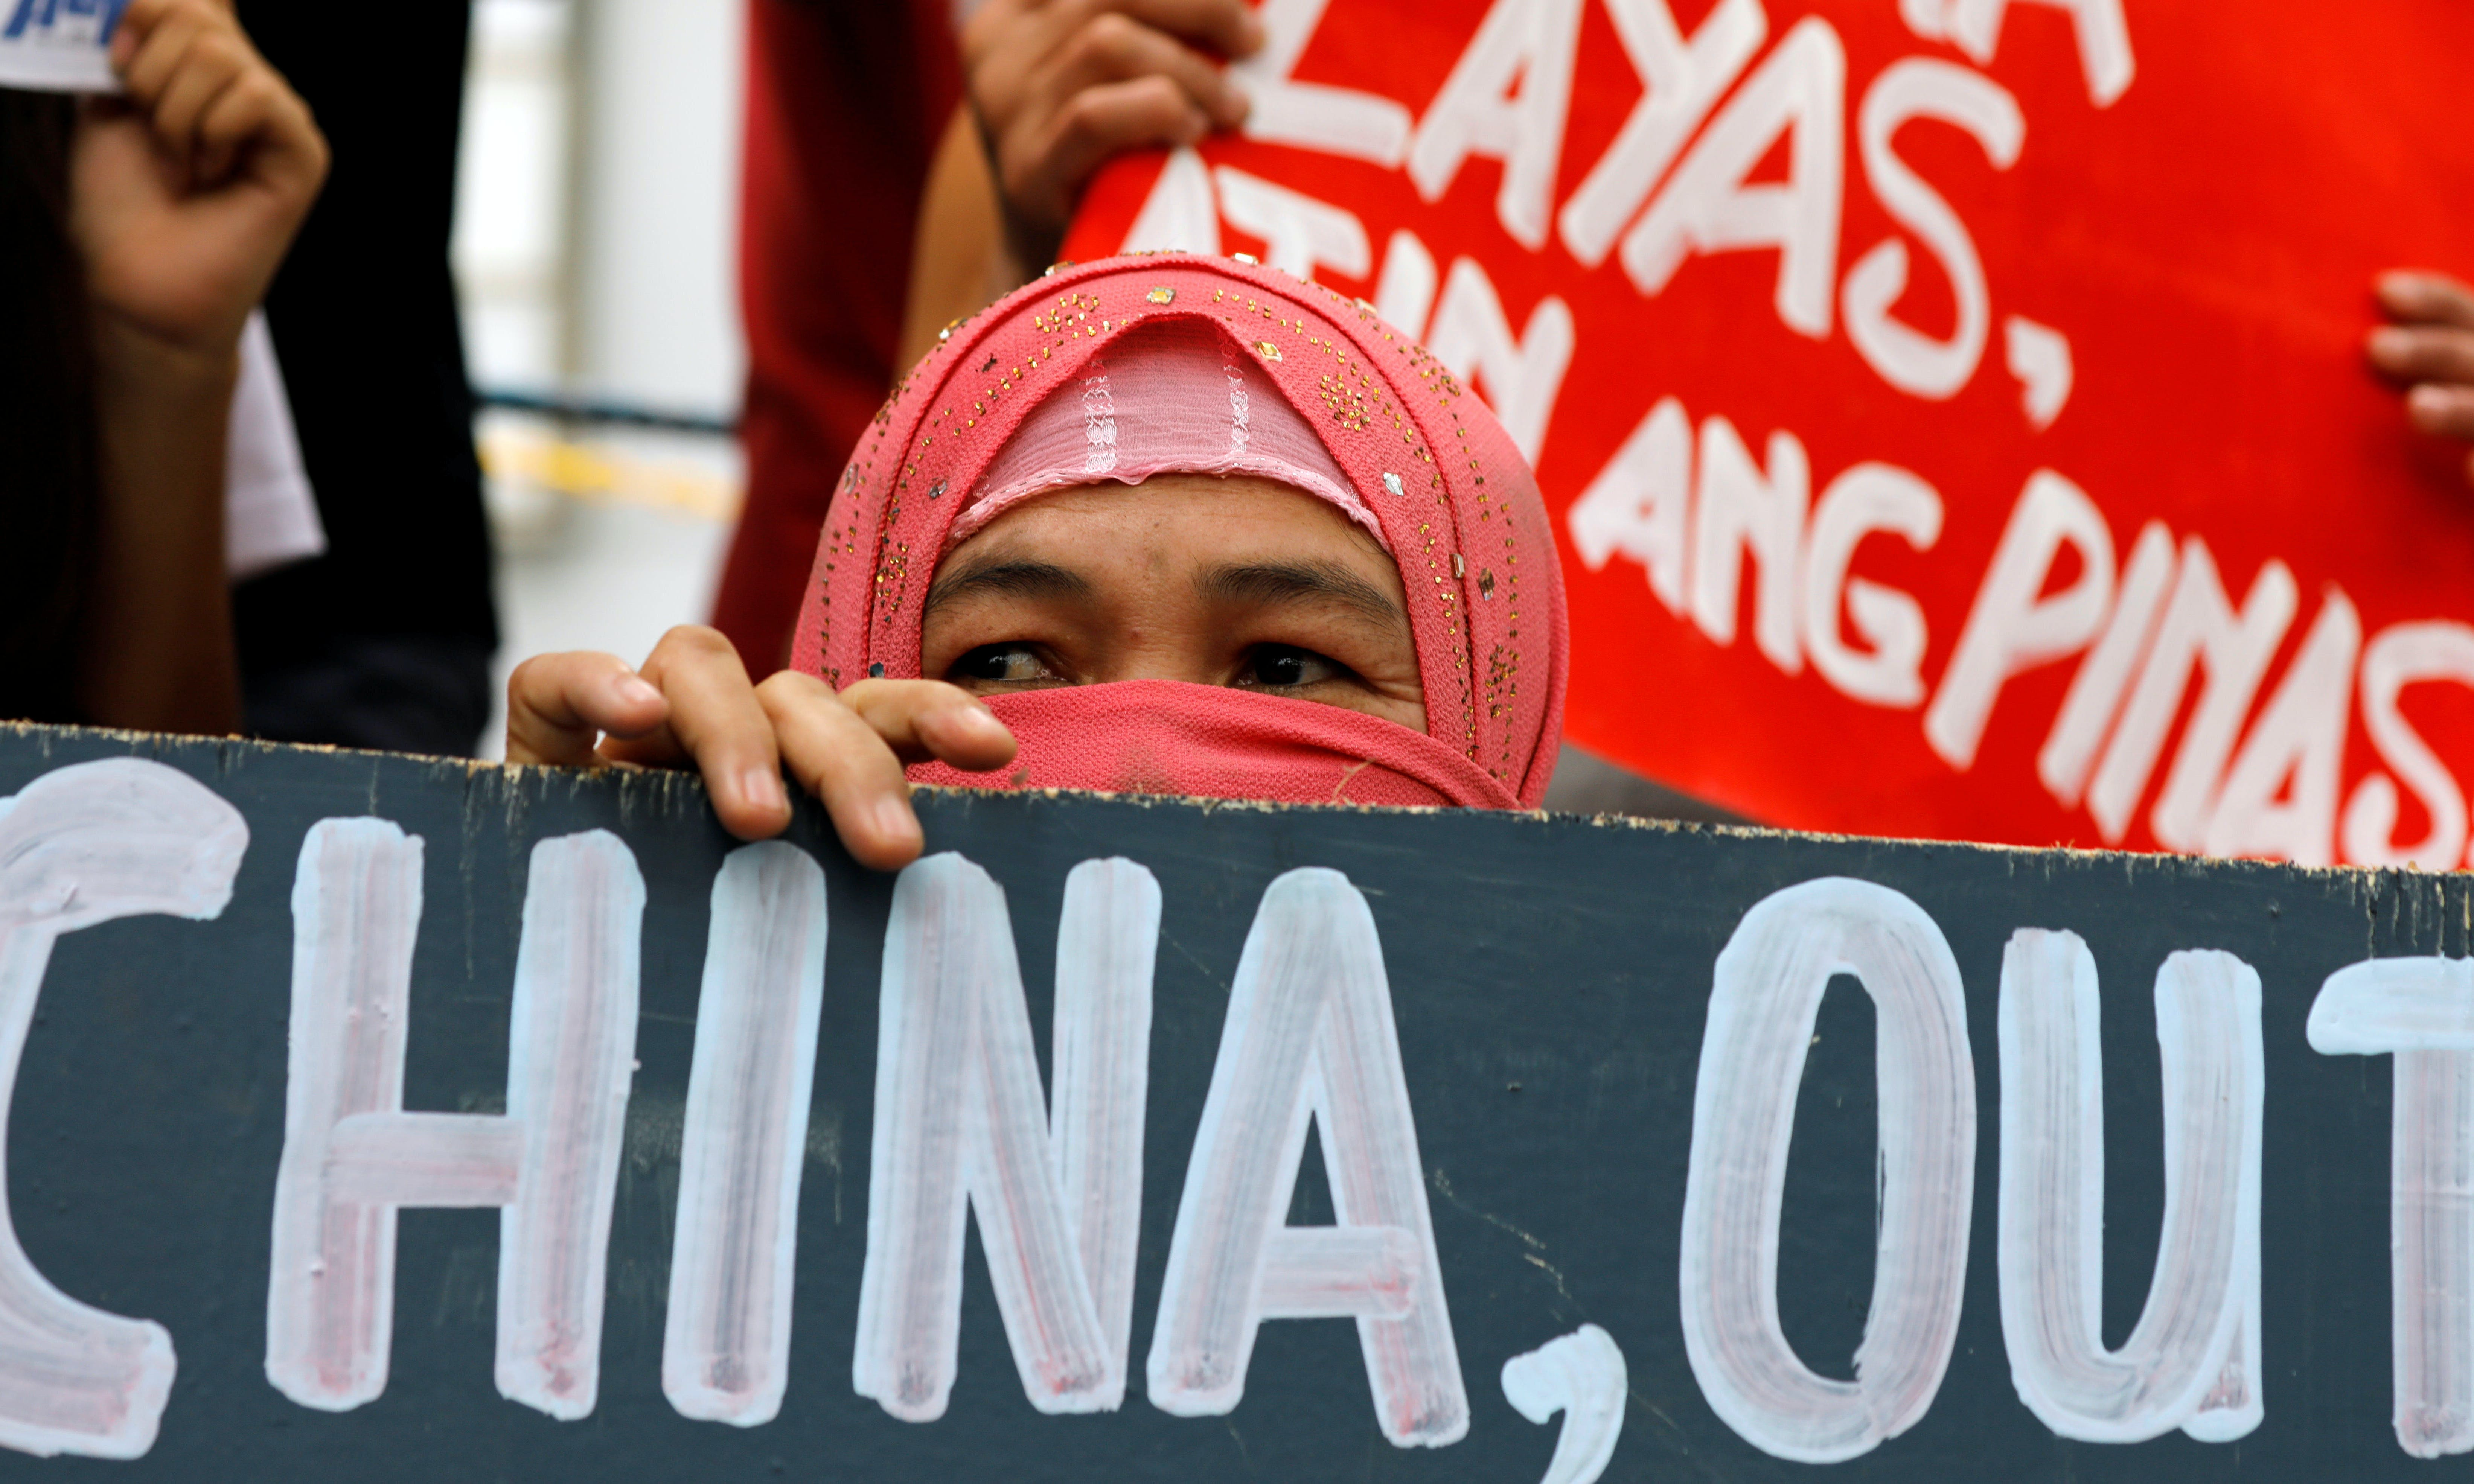 PHILIPPINES: Anti-China Platforms Take Center Stage in Midterm Campaigns